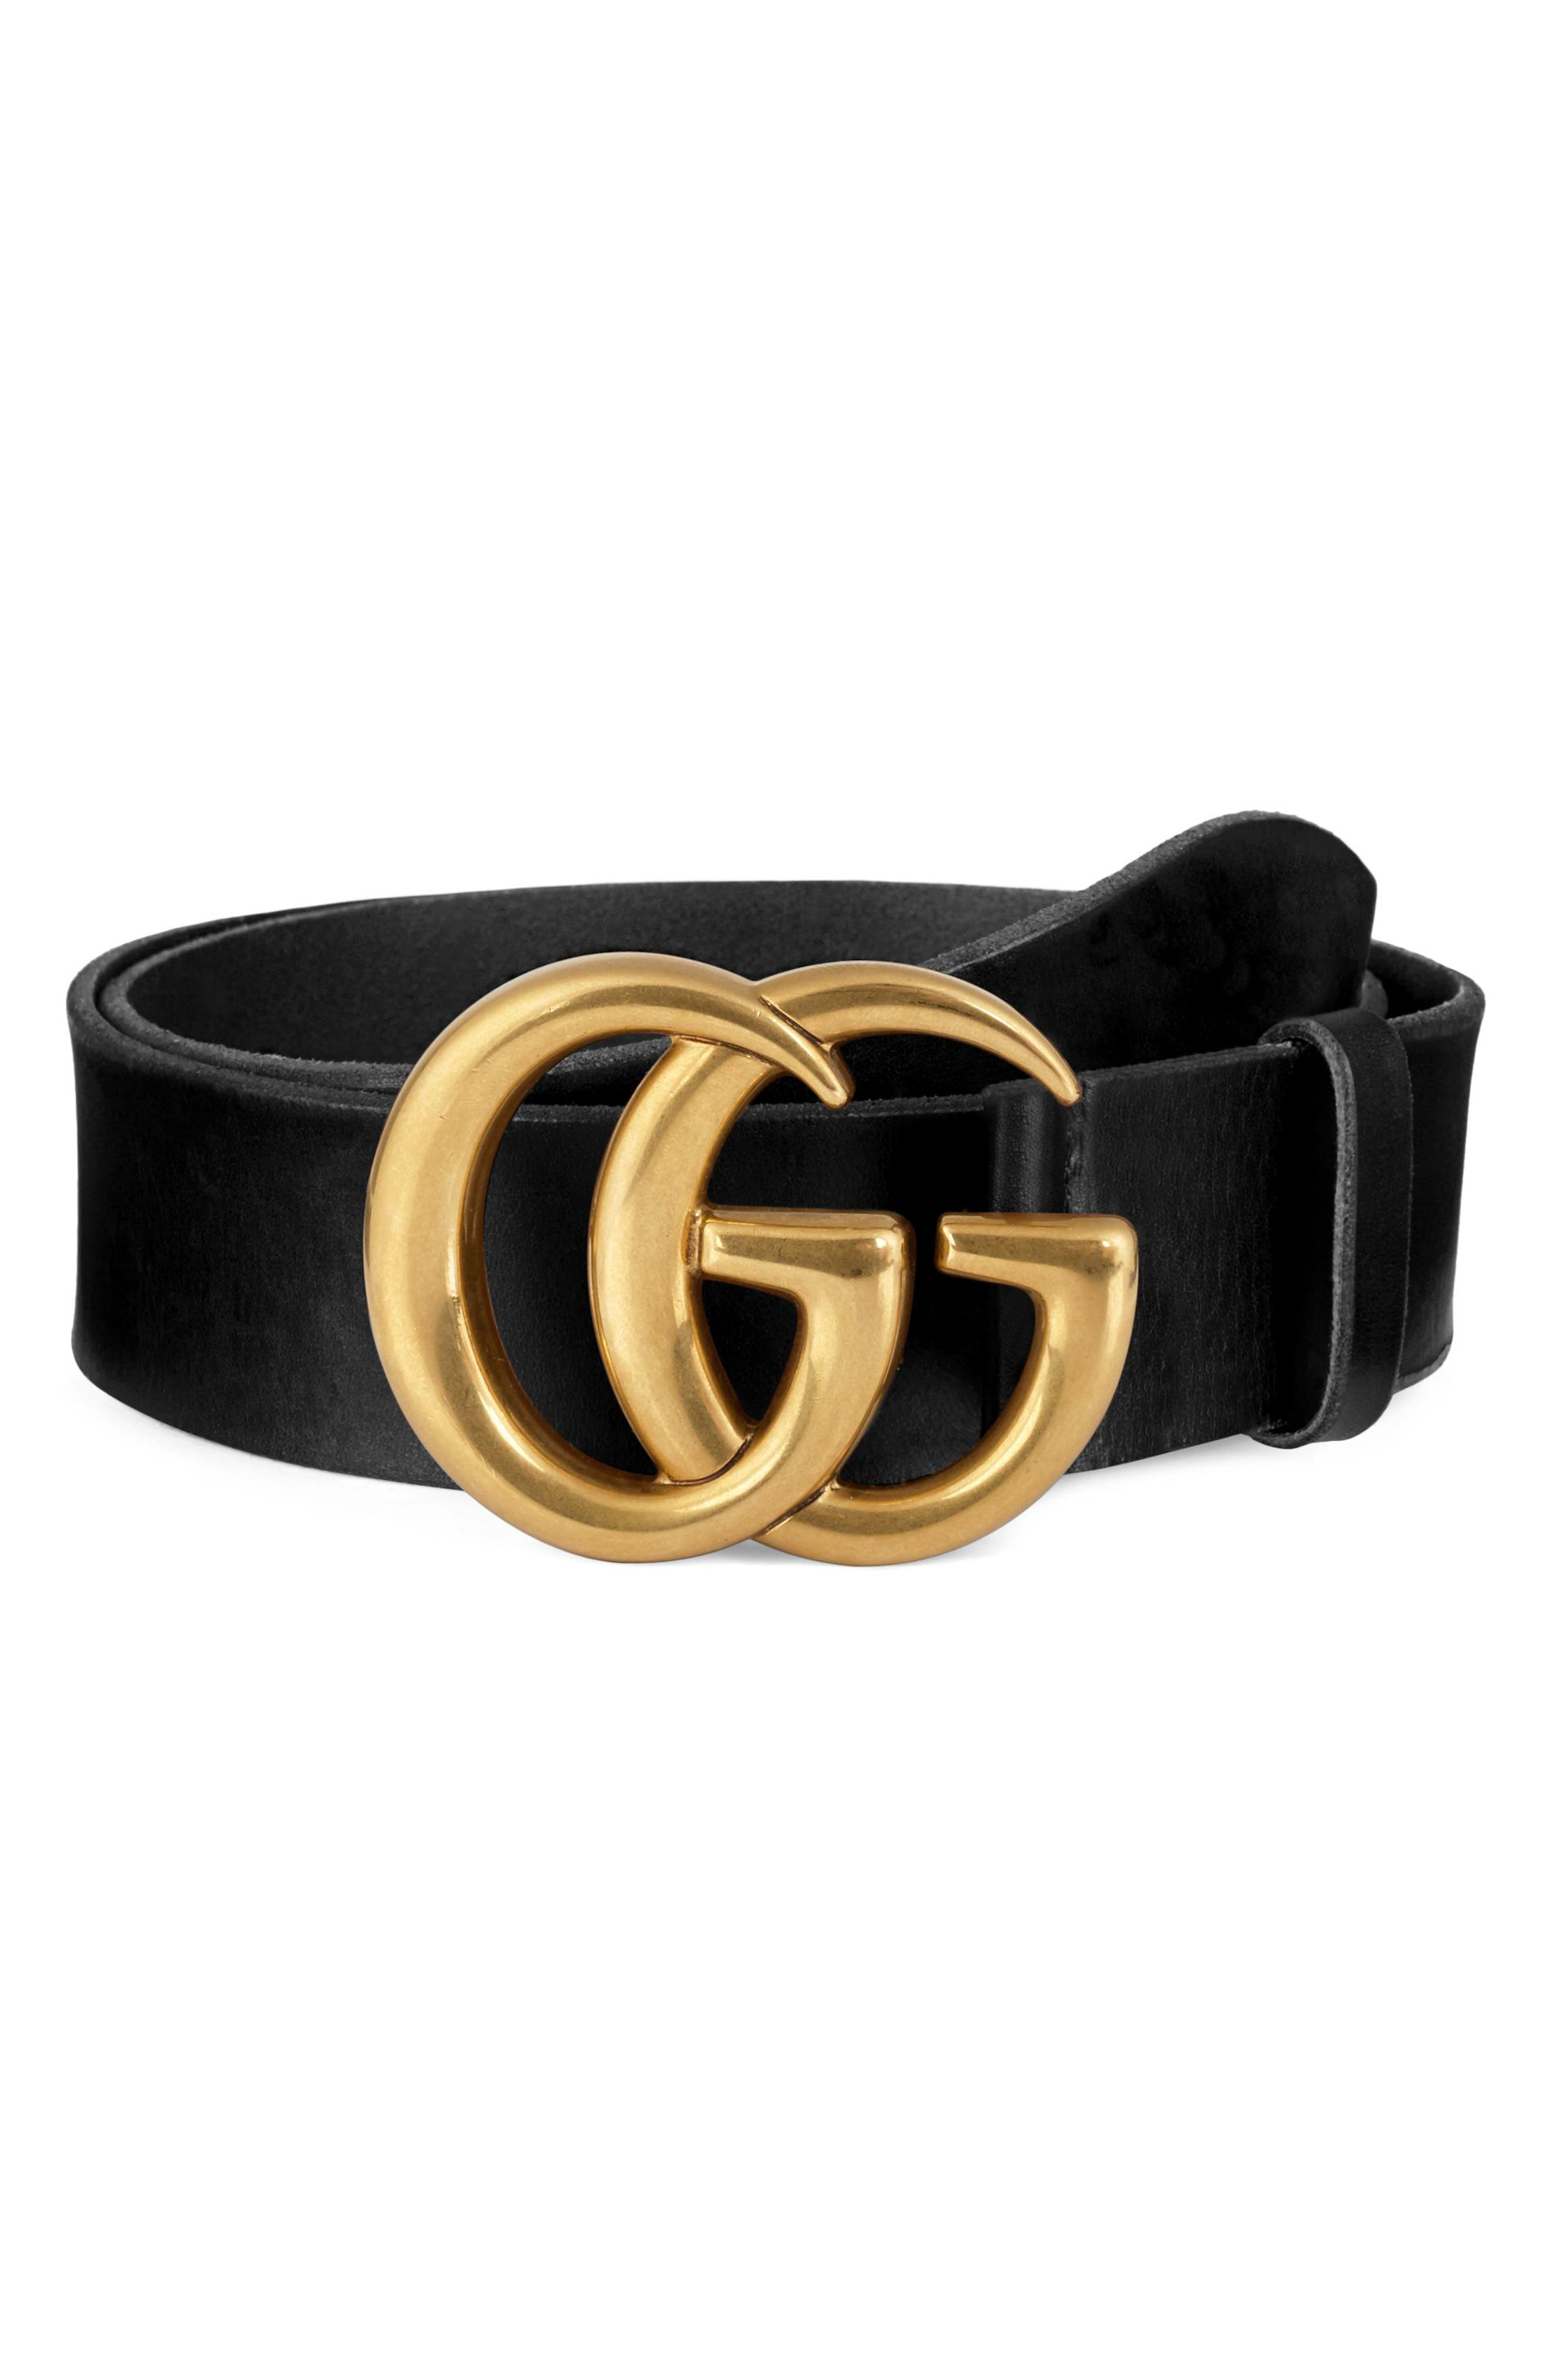 Running Gold Leather Belt,                             Main thumbnail 1, color,